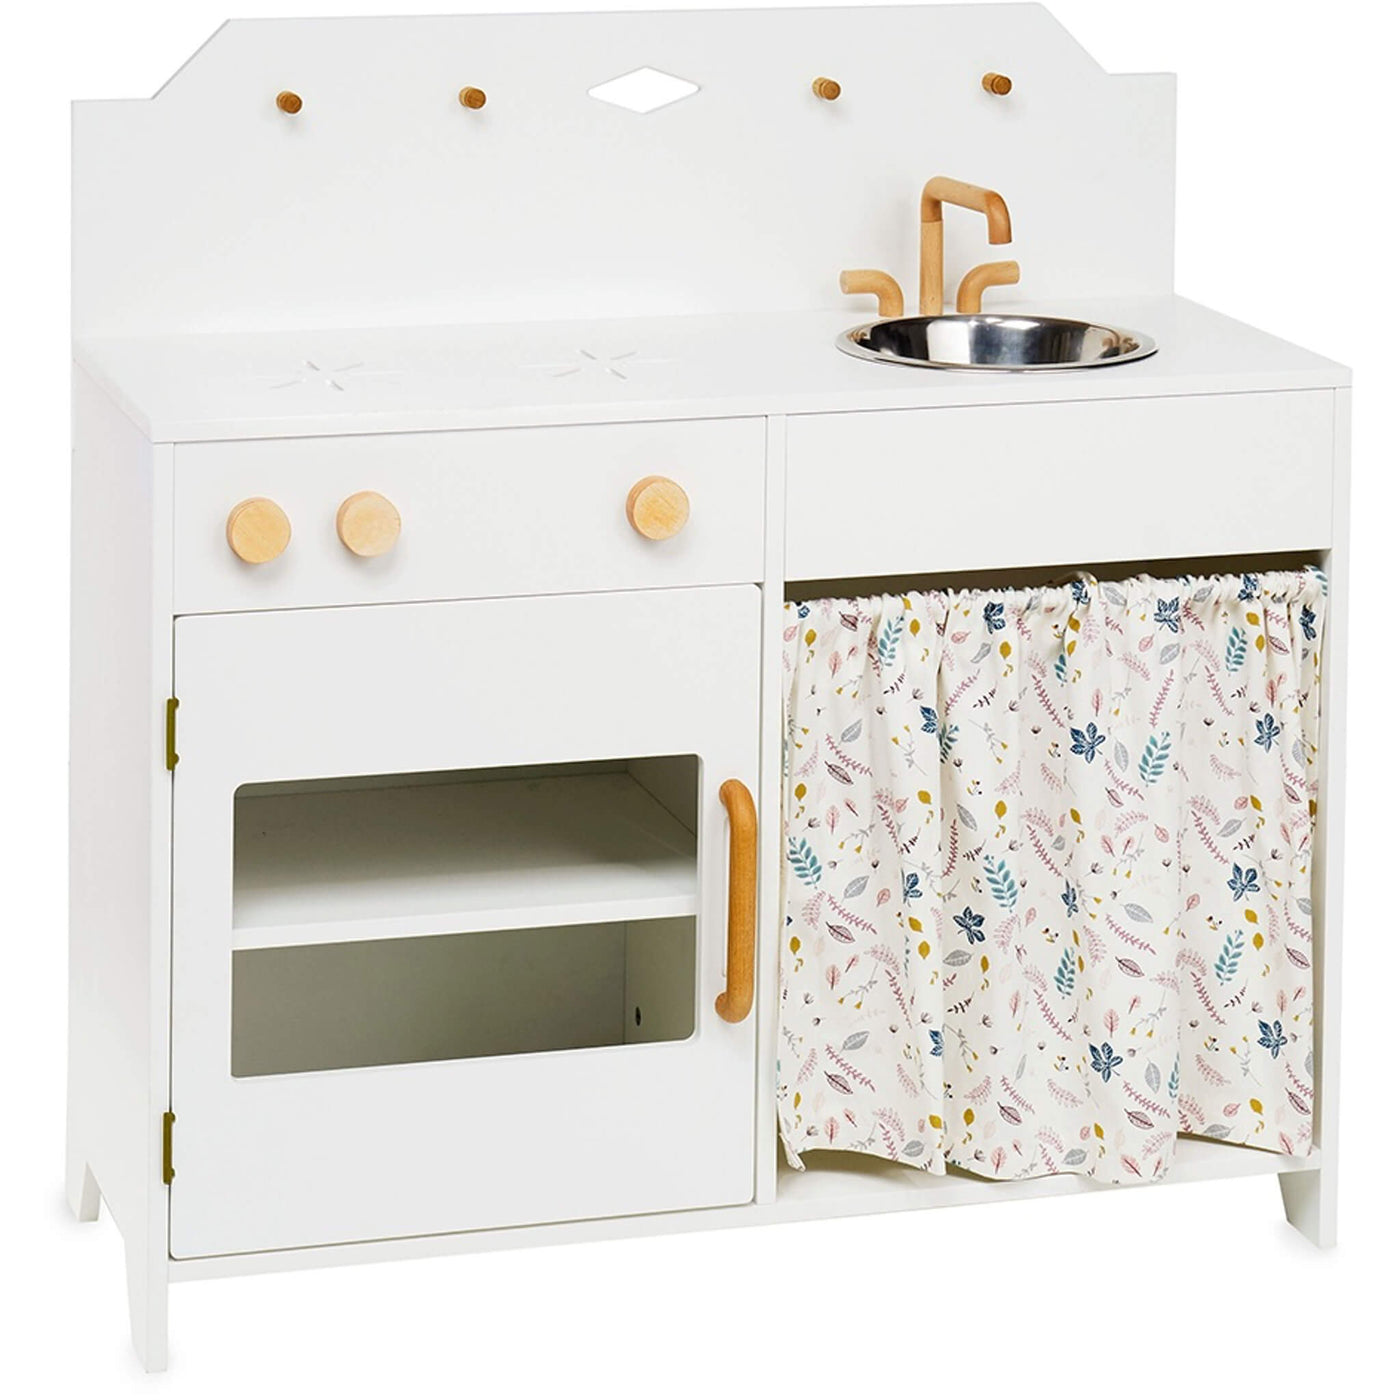 Play Kitchen - White / Pressed Leaves